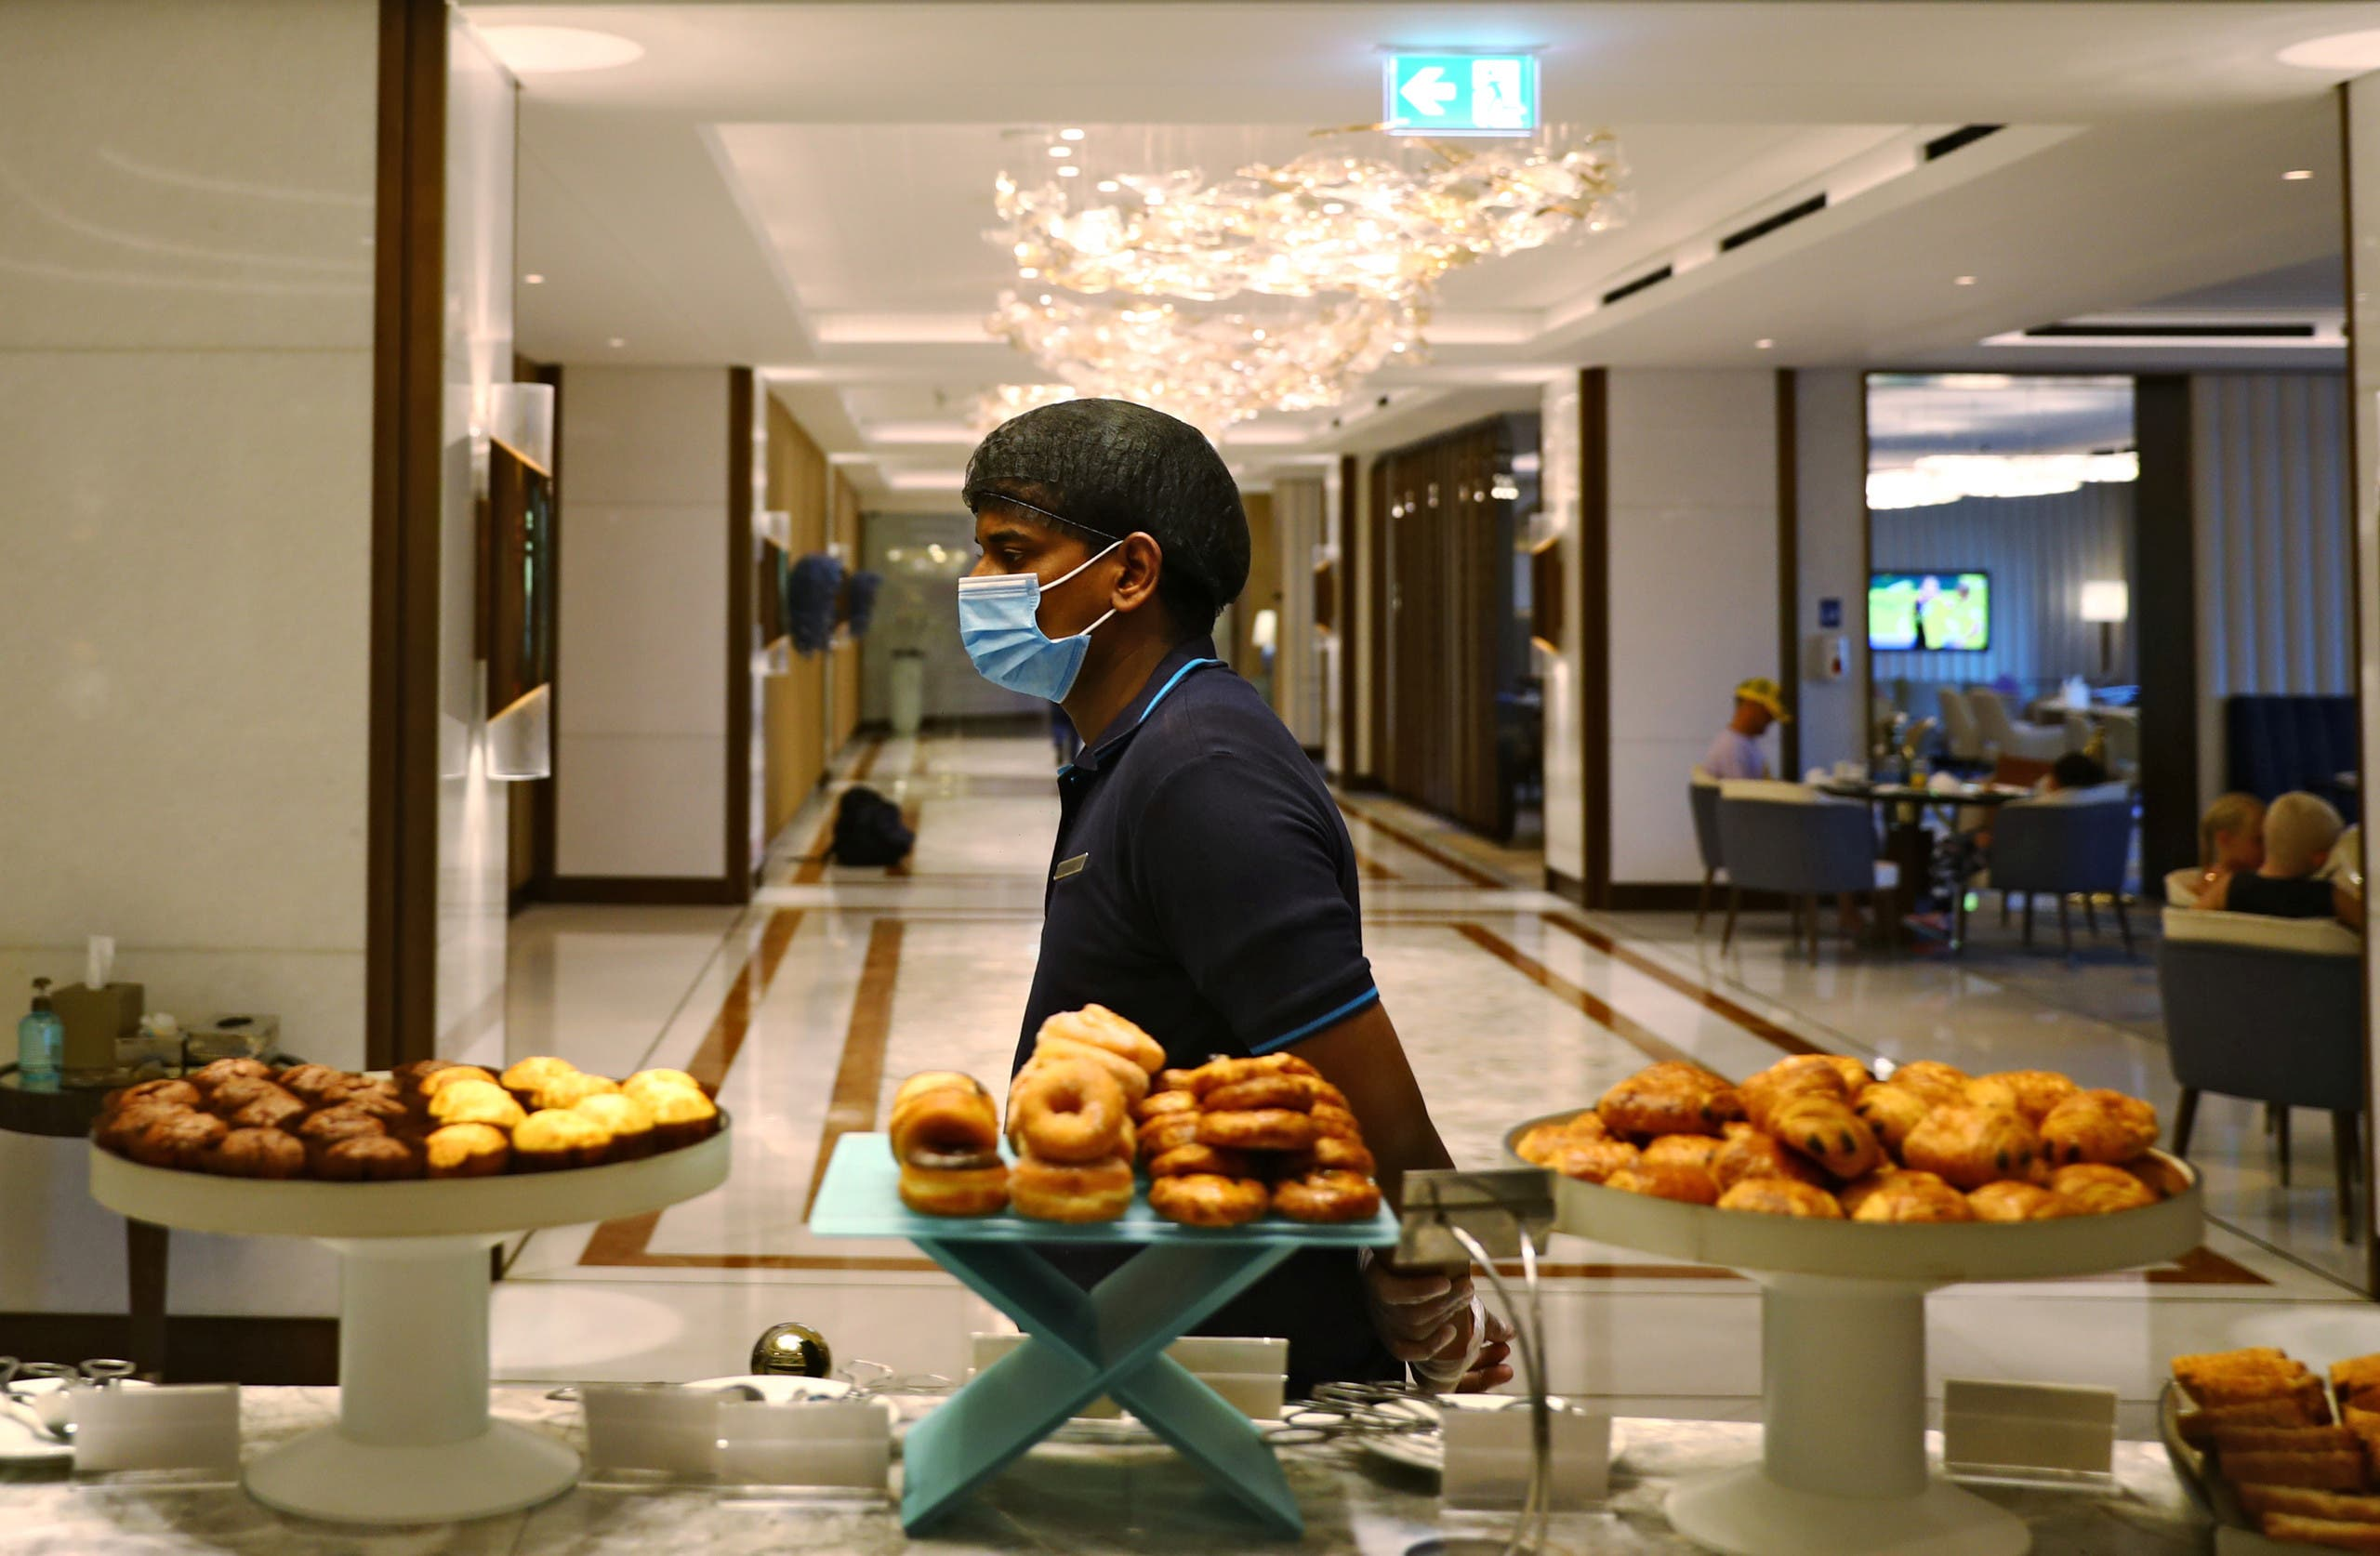 A waiter wearing a face mask walks past a buffet in the Atlantis The Palm hotel in Dubai. (File photo: Reuters)